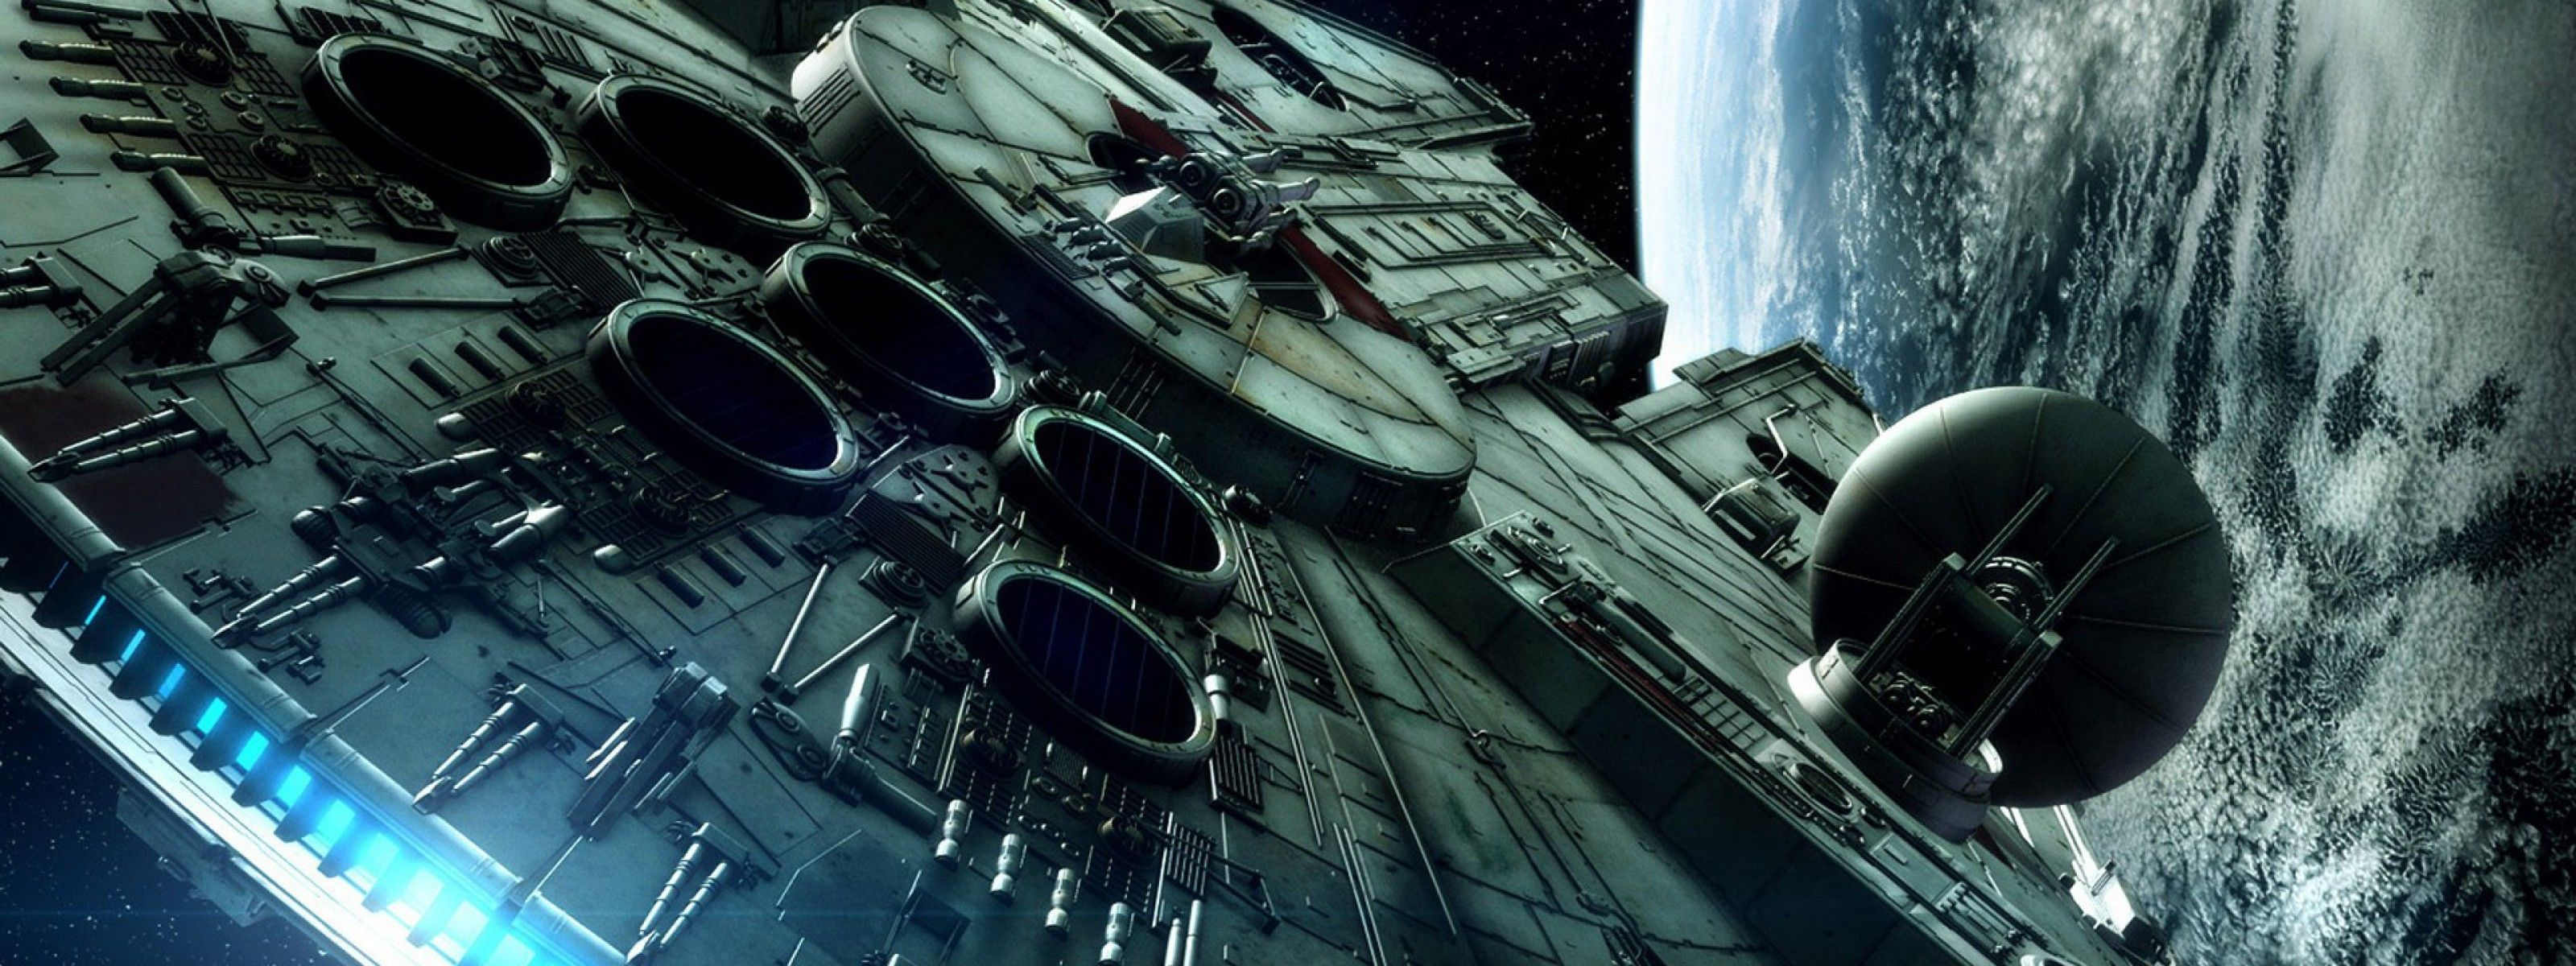 Star Wars Dual Monitor Wallpapers Group (85+)